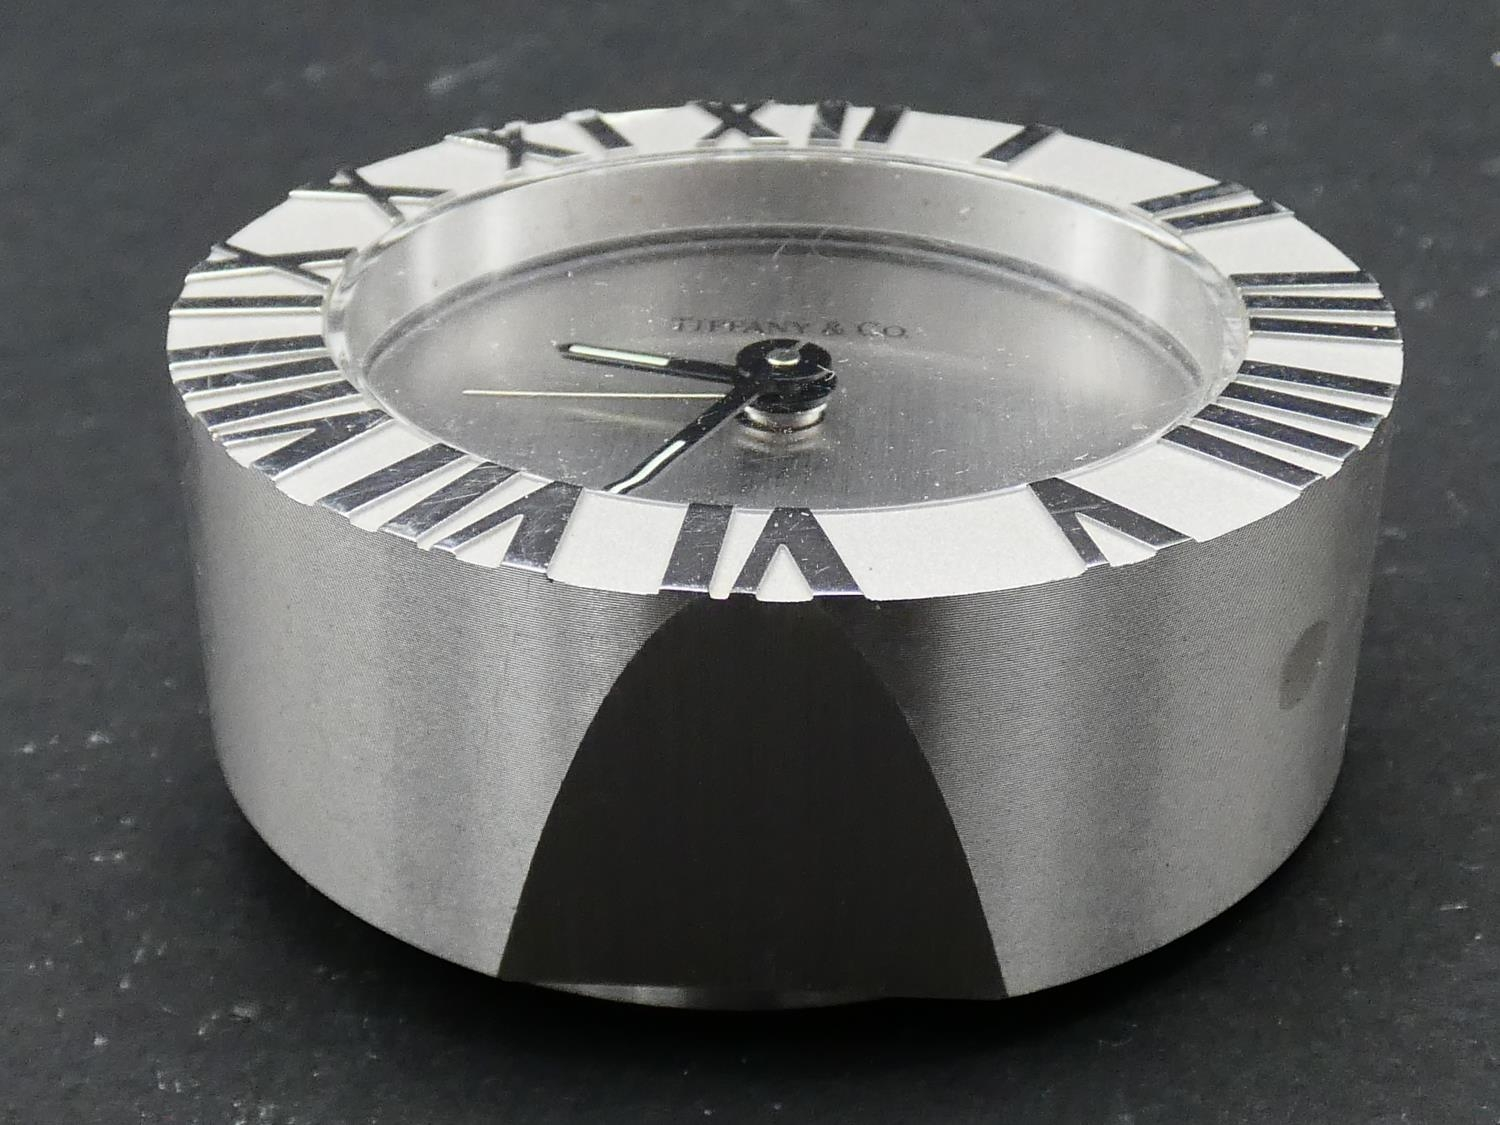 A Tiffany & Co Swiss made stainless steel Roman numeral quartz alarm clock with brushed chrome bezel - Image 3 of 6